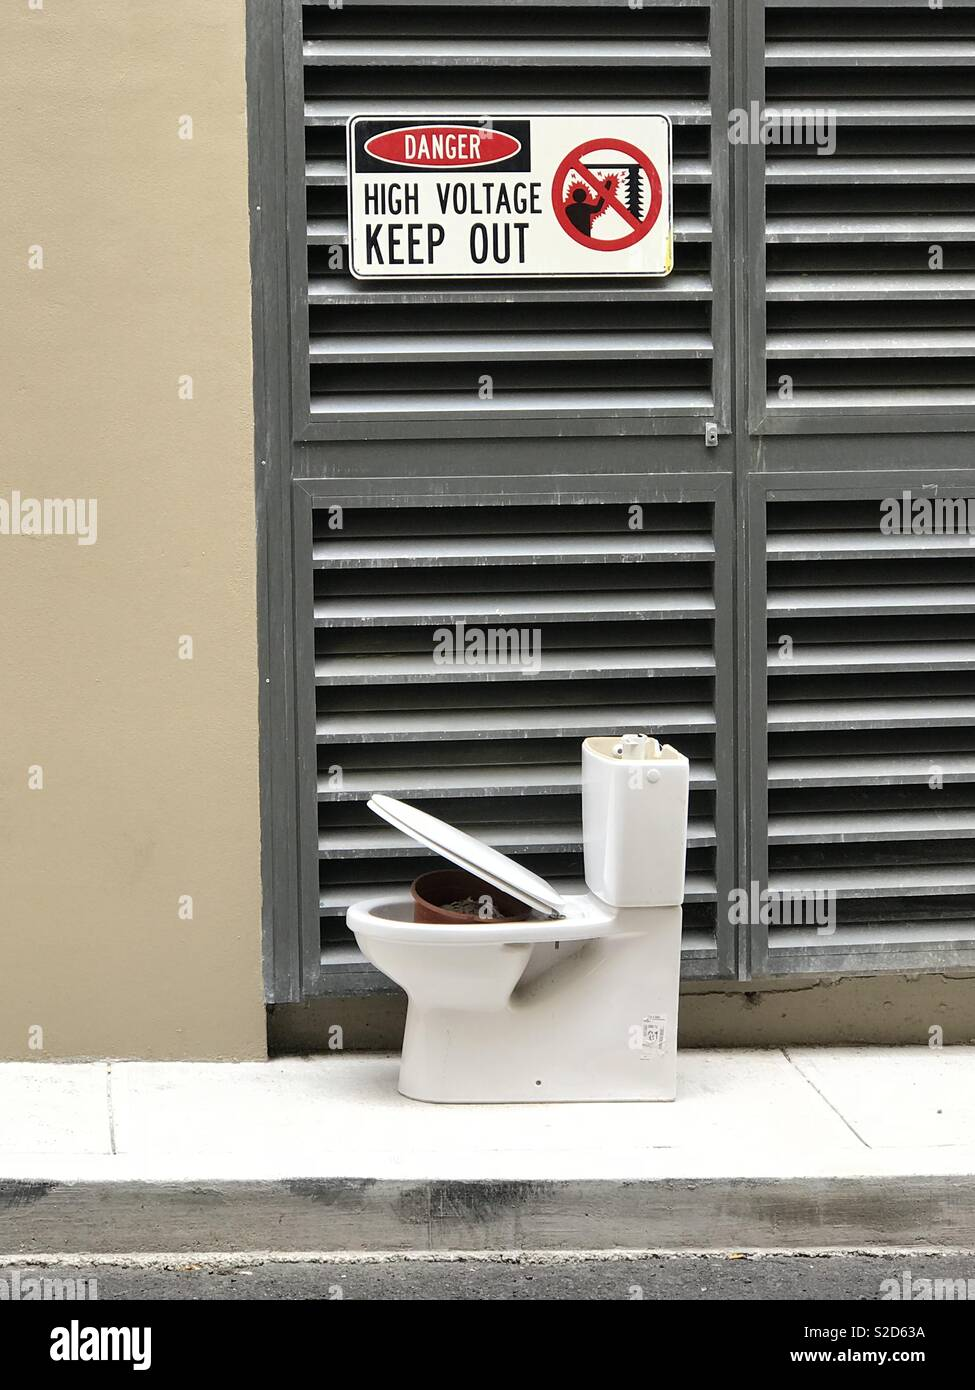 A discarded toilet left in the street in Ultimo, Sydney, NSW, Australia - Stock Image